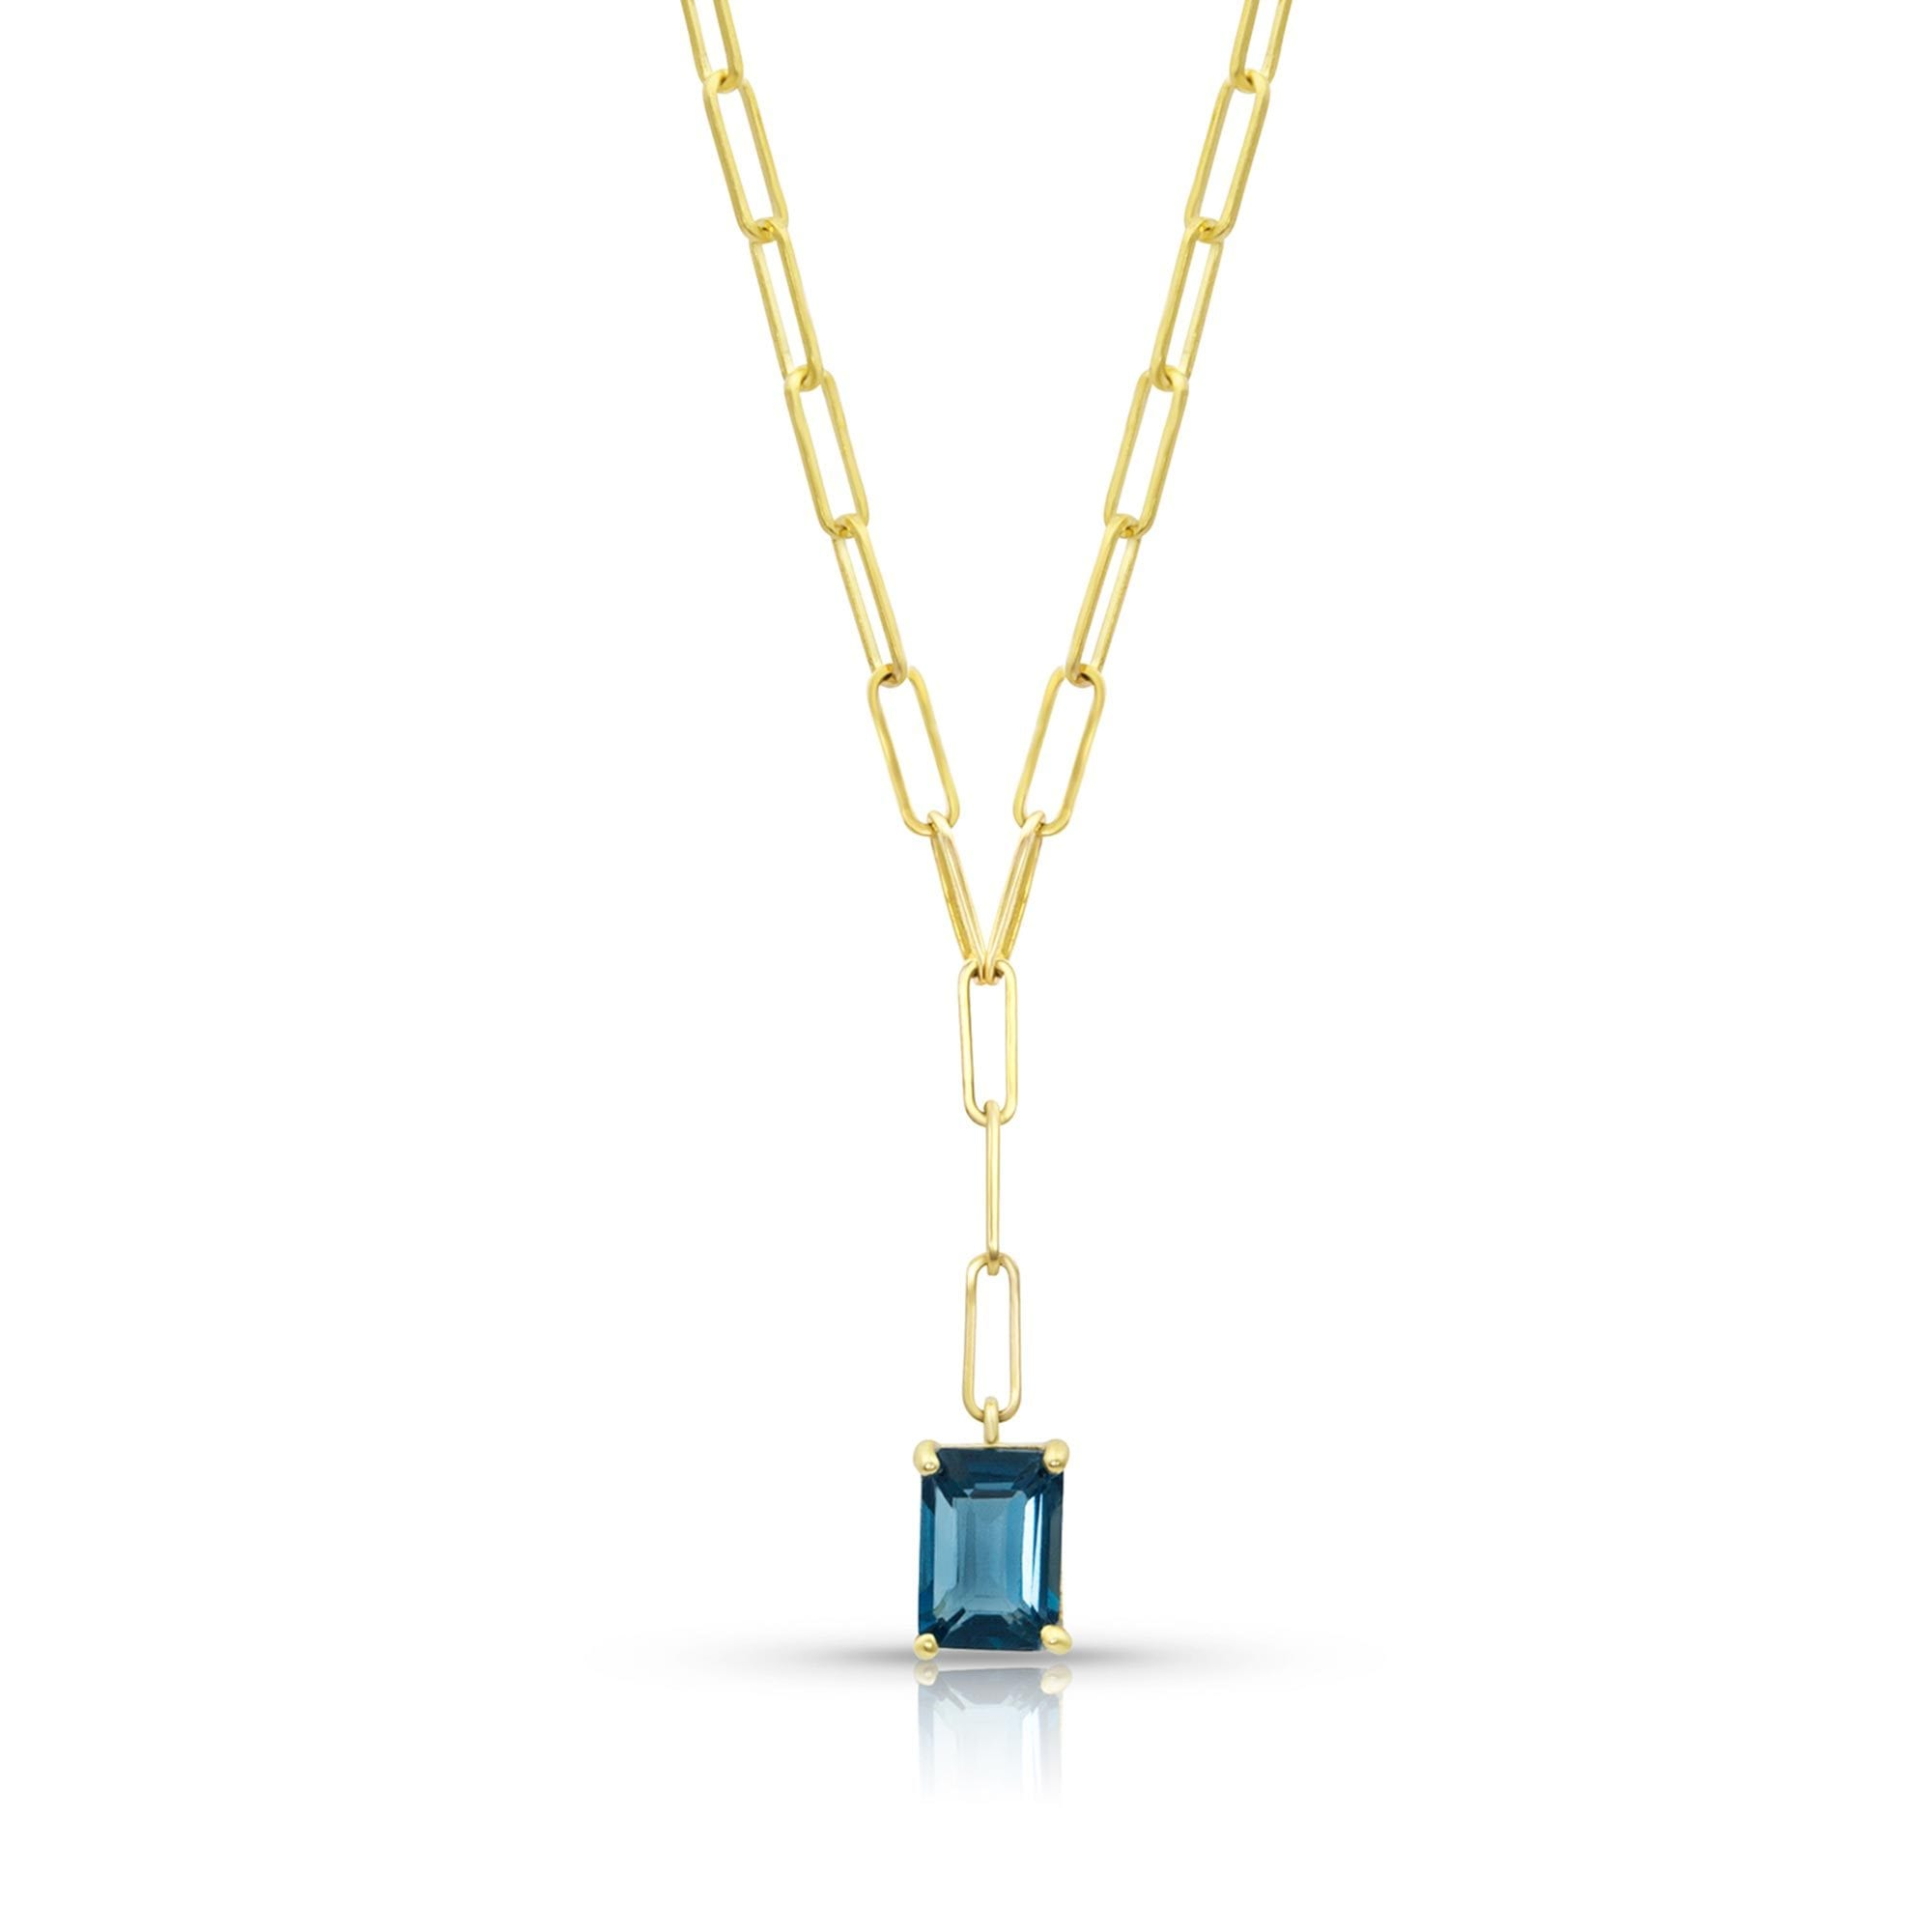 Vincents Fine Jewelry | M. Spalten | Gemdrop Topaz Lariat Necklace